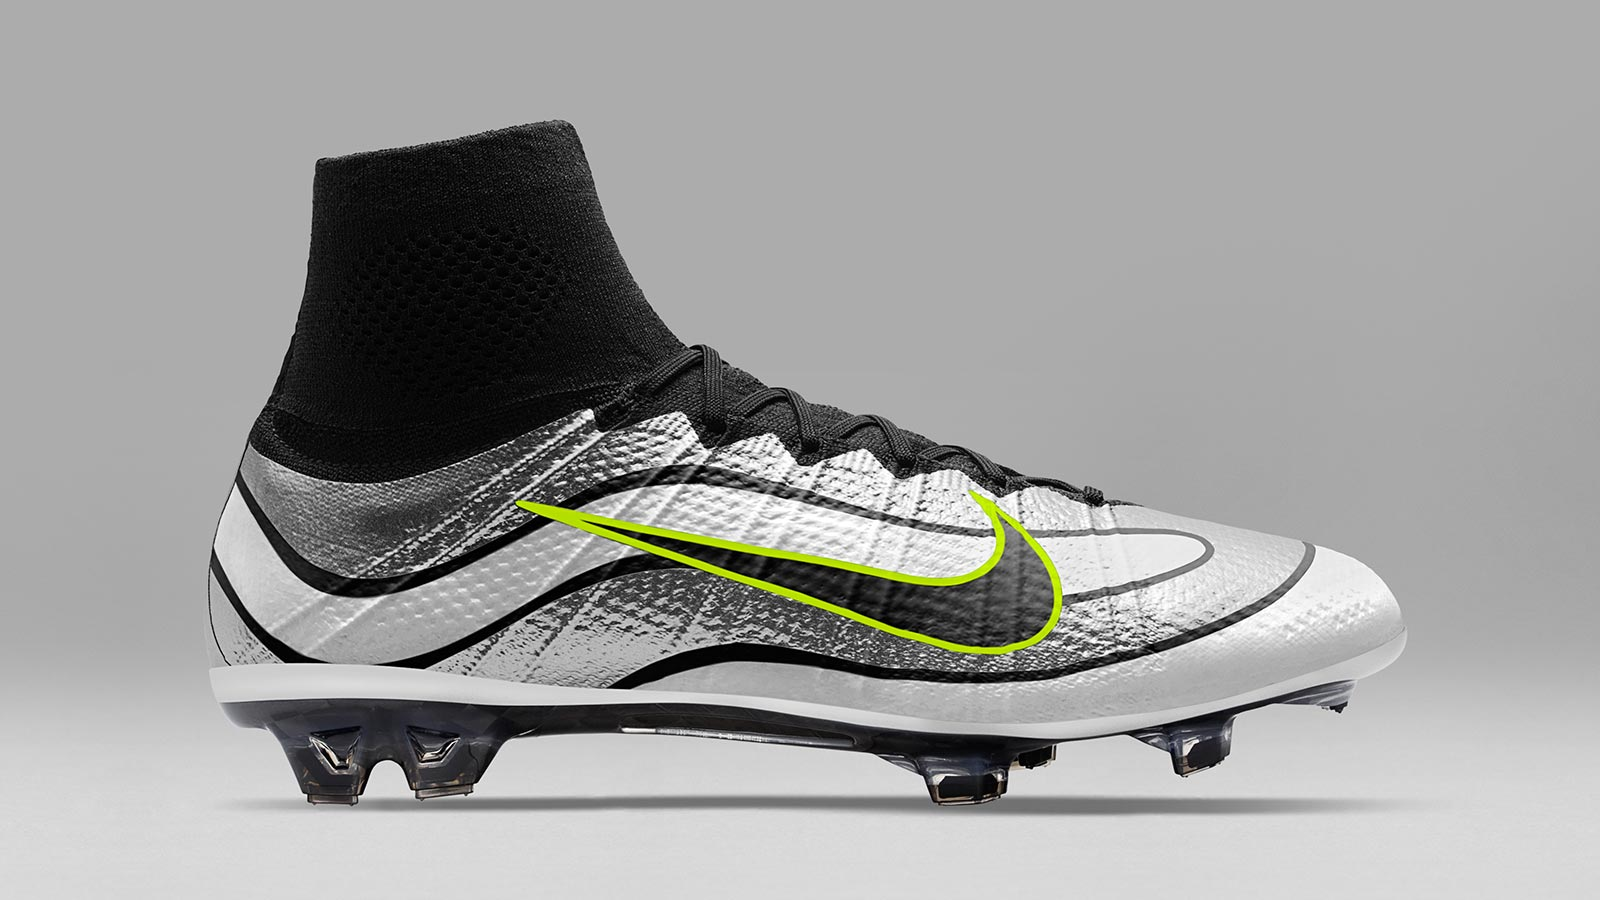 64ab69220 ... sweden nike mercurial superfly heritage id revealed ronaldo r9 bd3d4  7a431